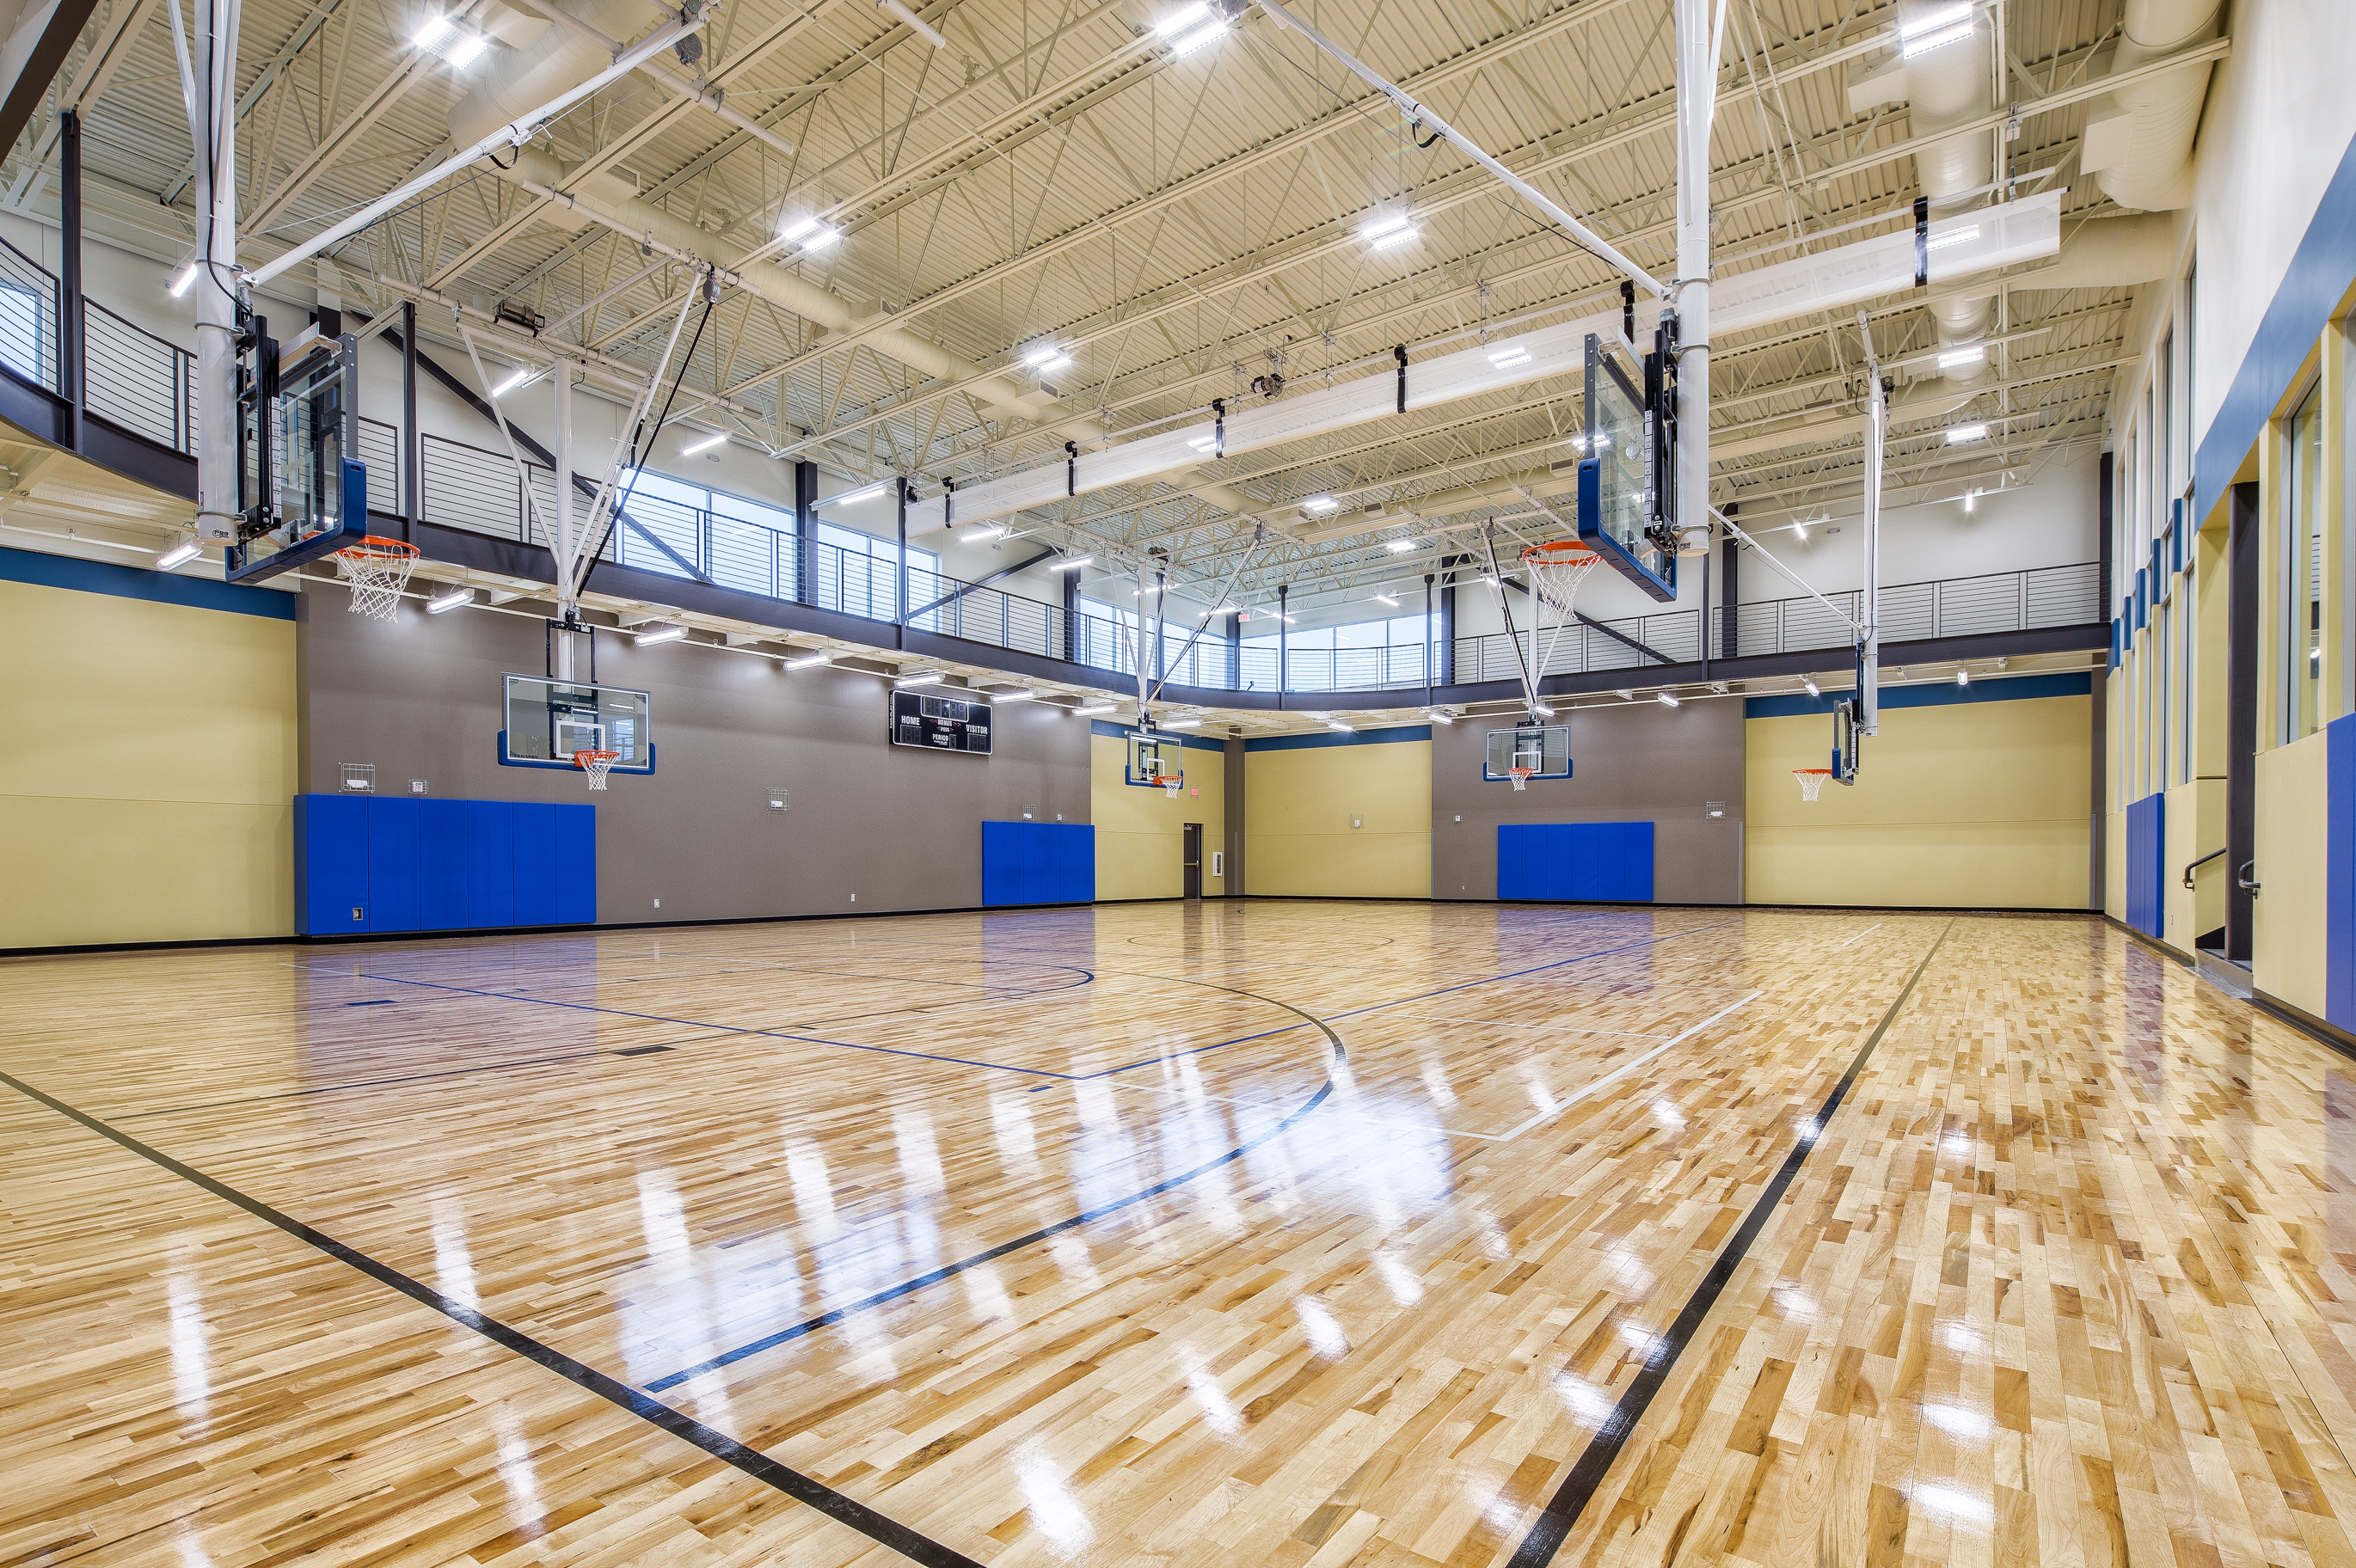 Energy Wellness Center basketball court